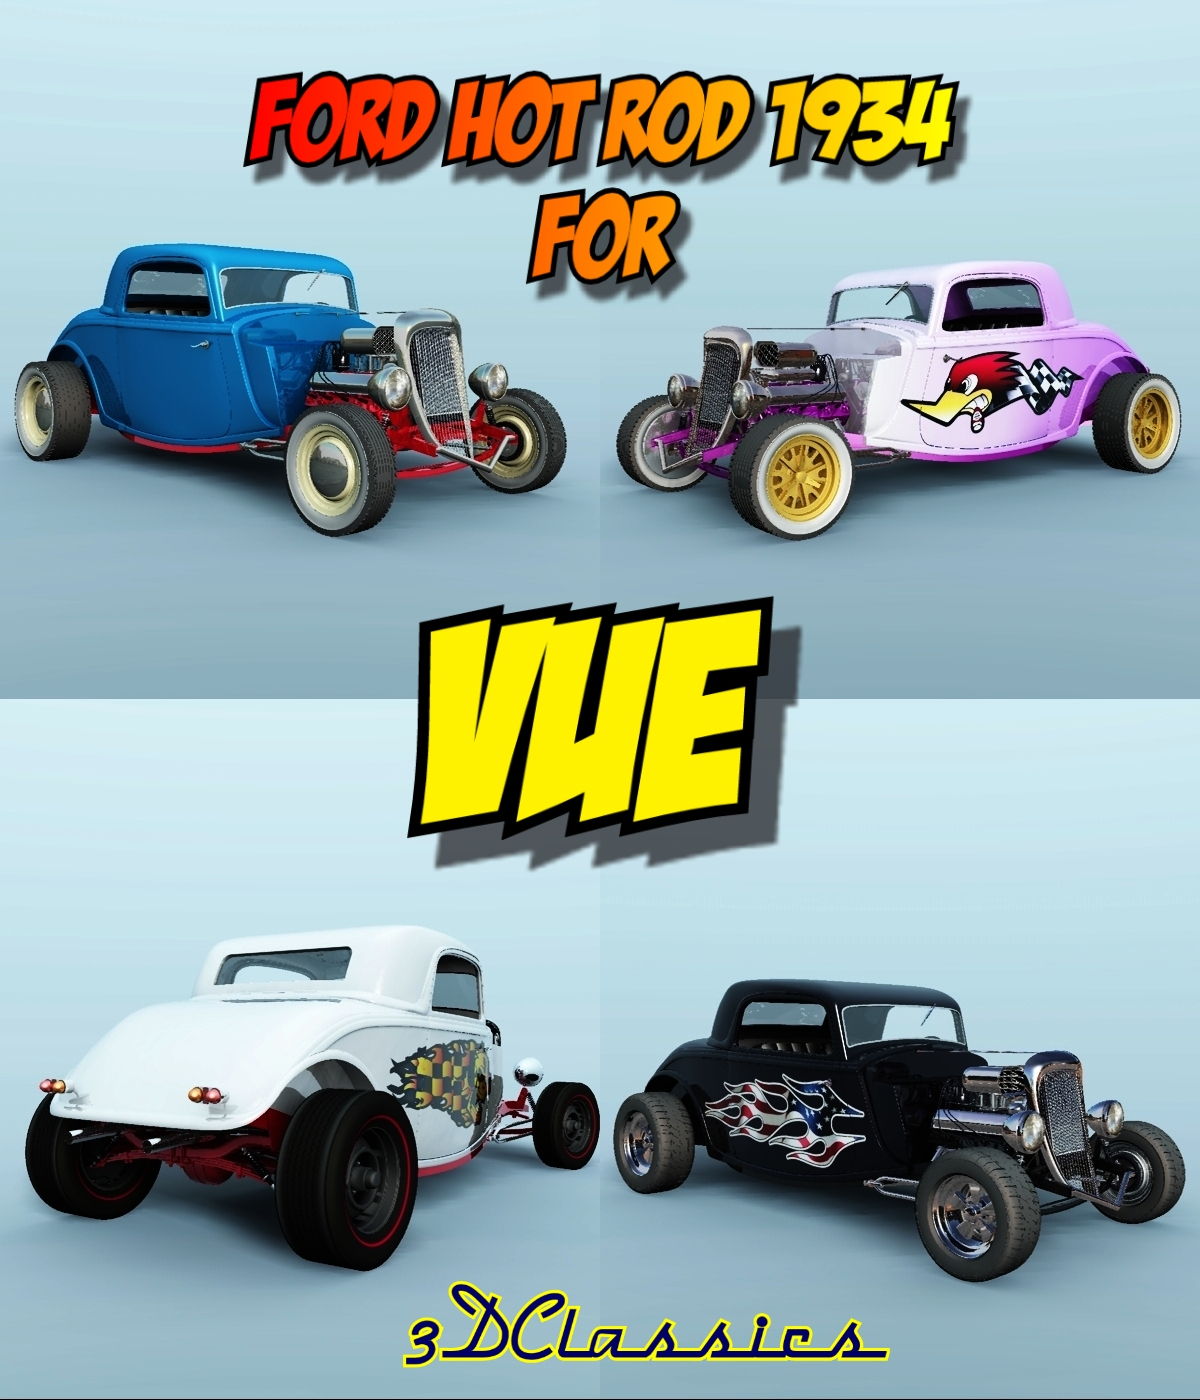 FORD HOT ROD 1934 for VUE by 3DClassics